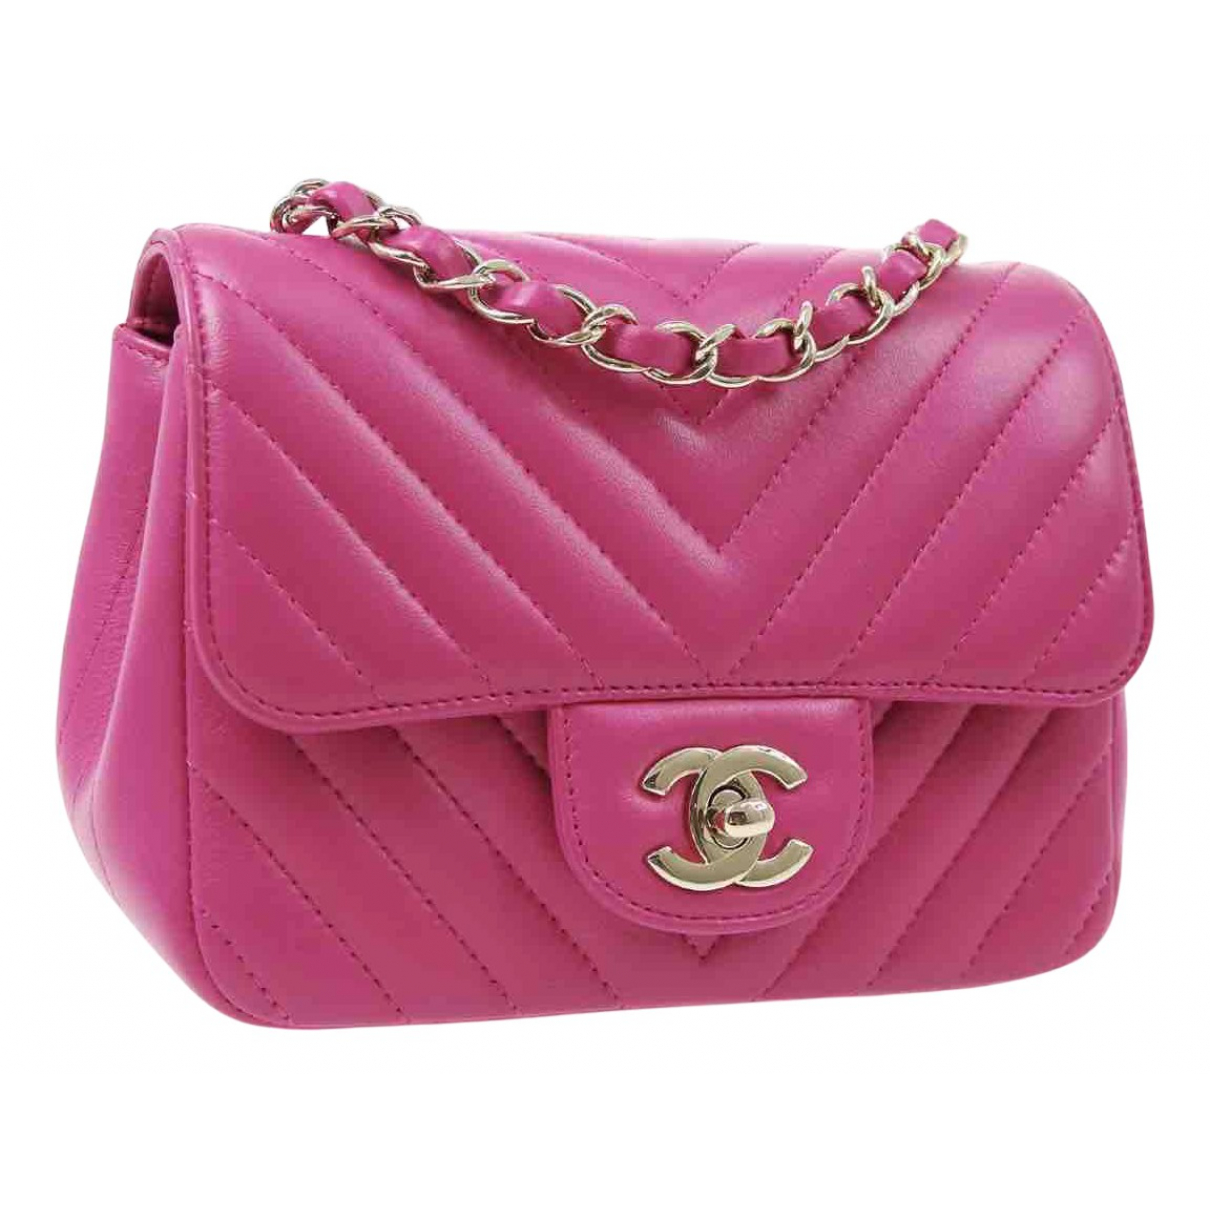 Chanel Timeless/Classique Pink Leather handbag for Women \N